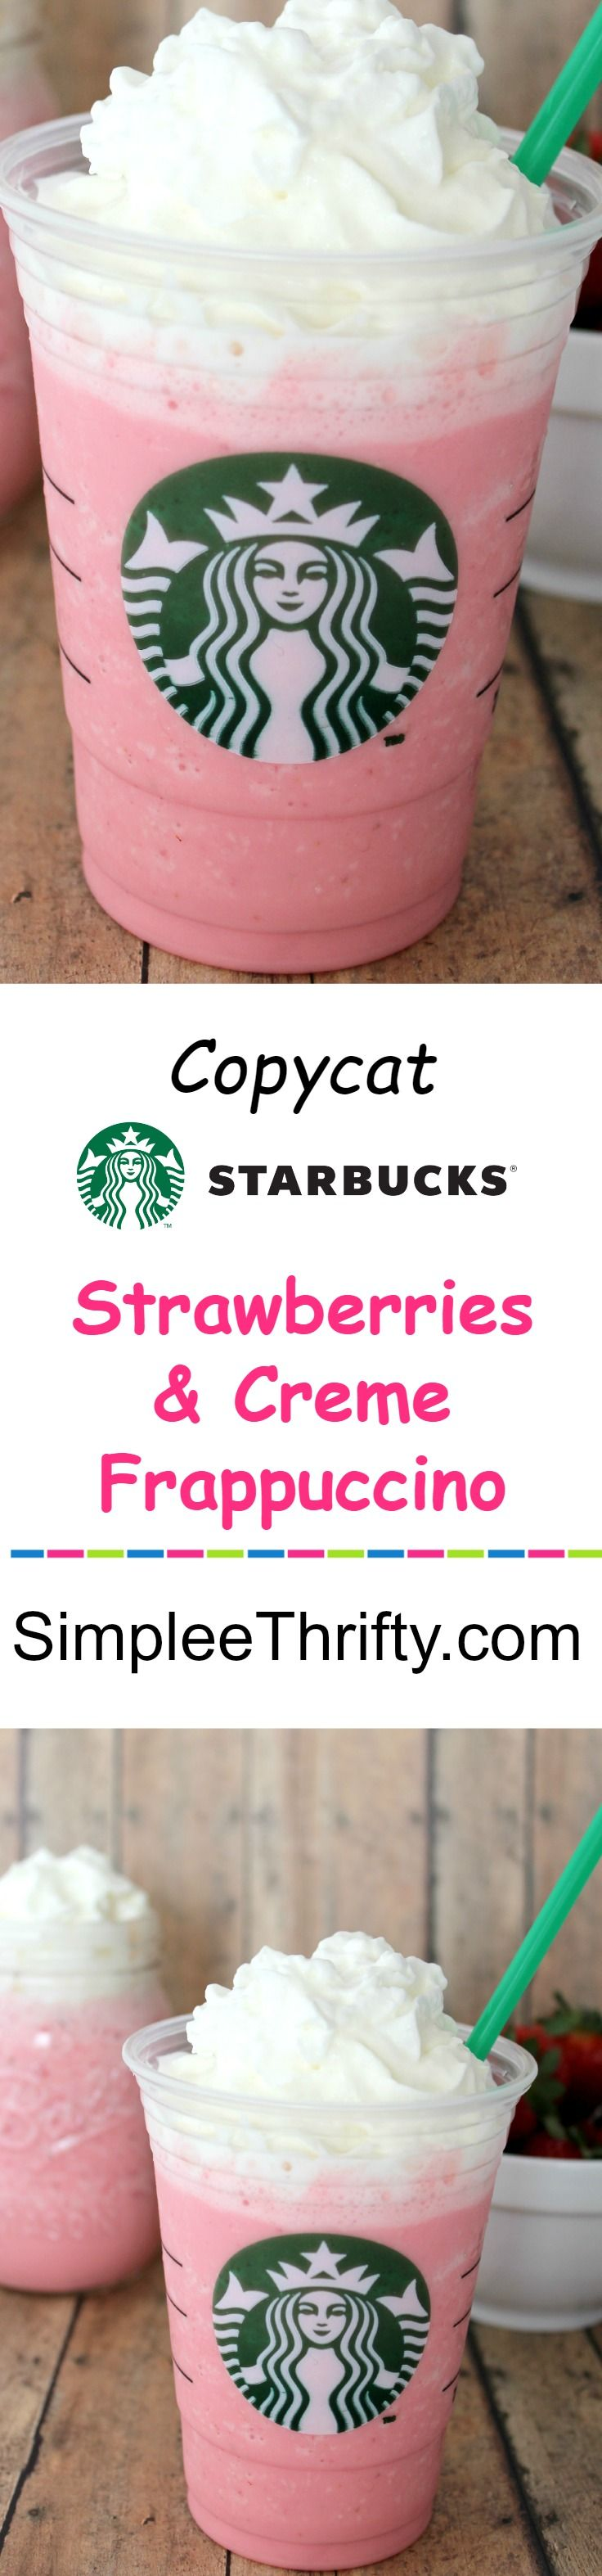 Here is another delicious drink to try! Copycat Starbucks Strawberries and Creme Frappuccino. This is a great way to save and get your favorite drink for less!